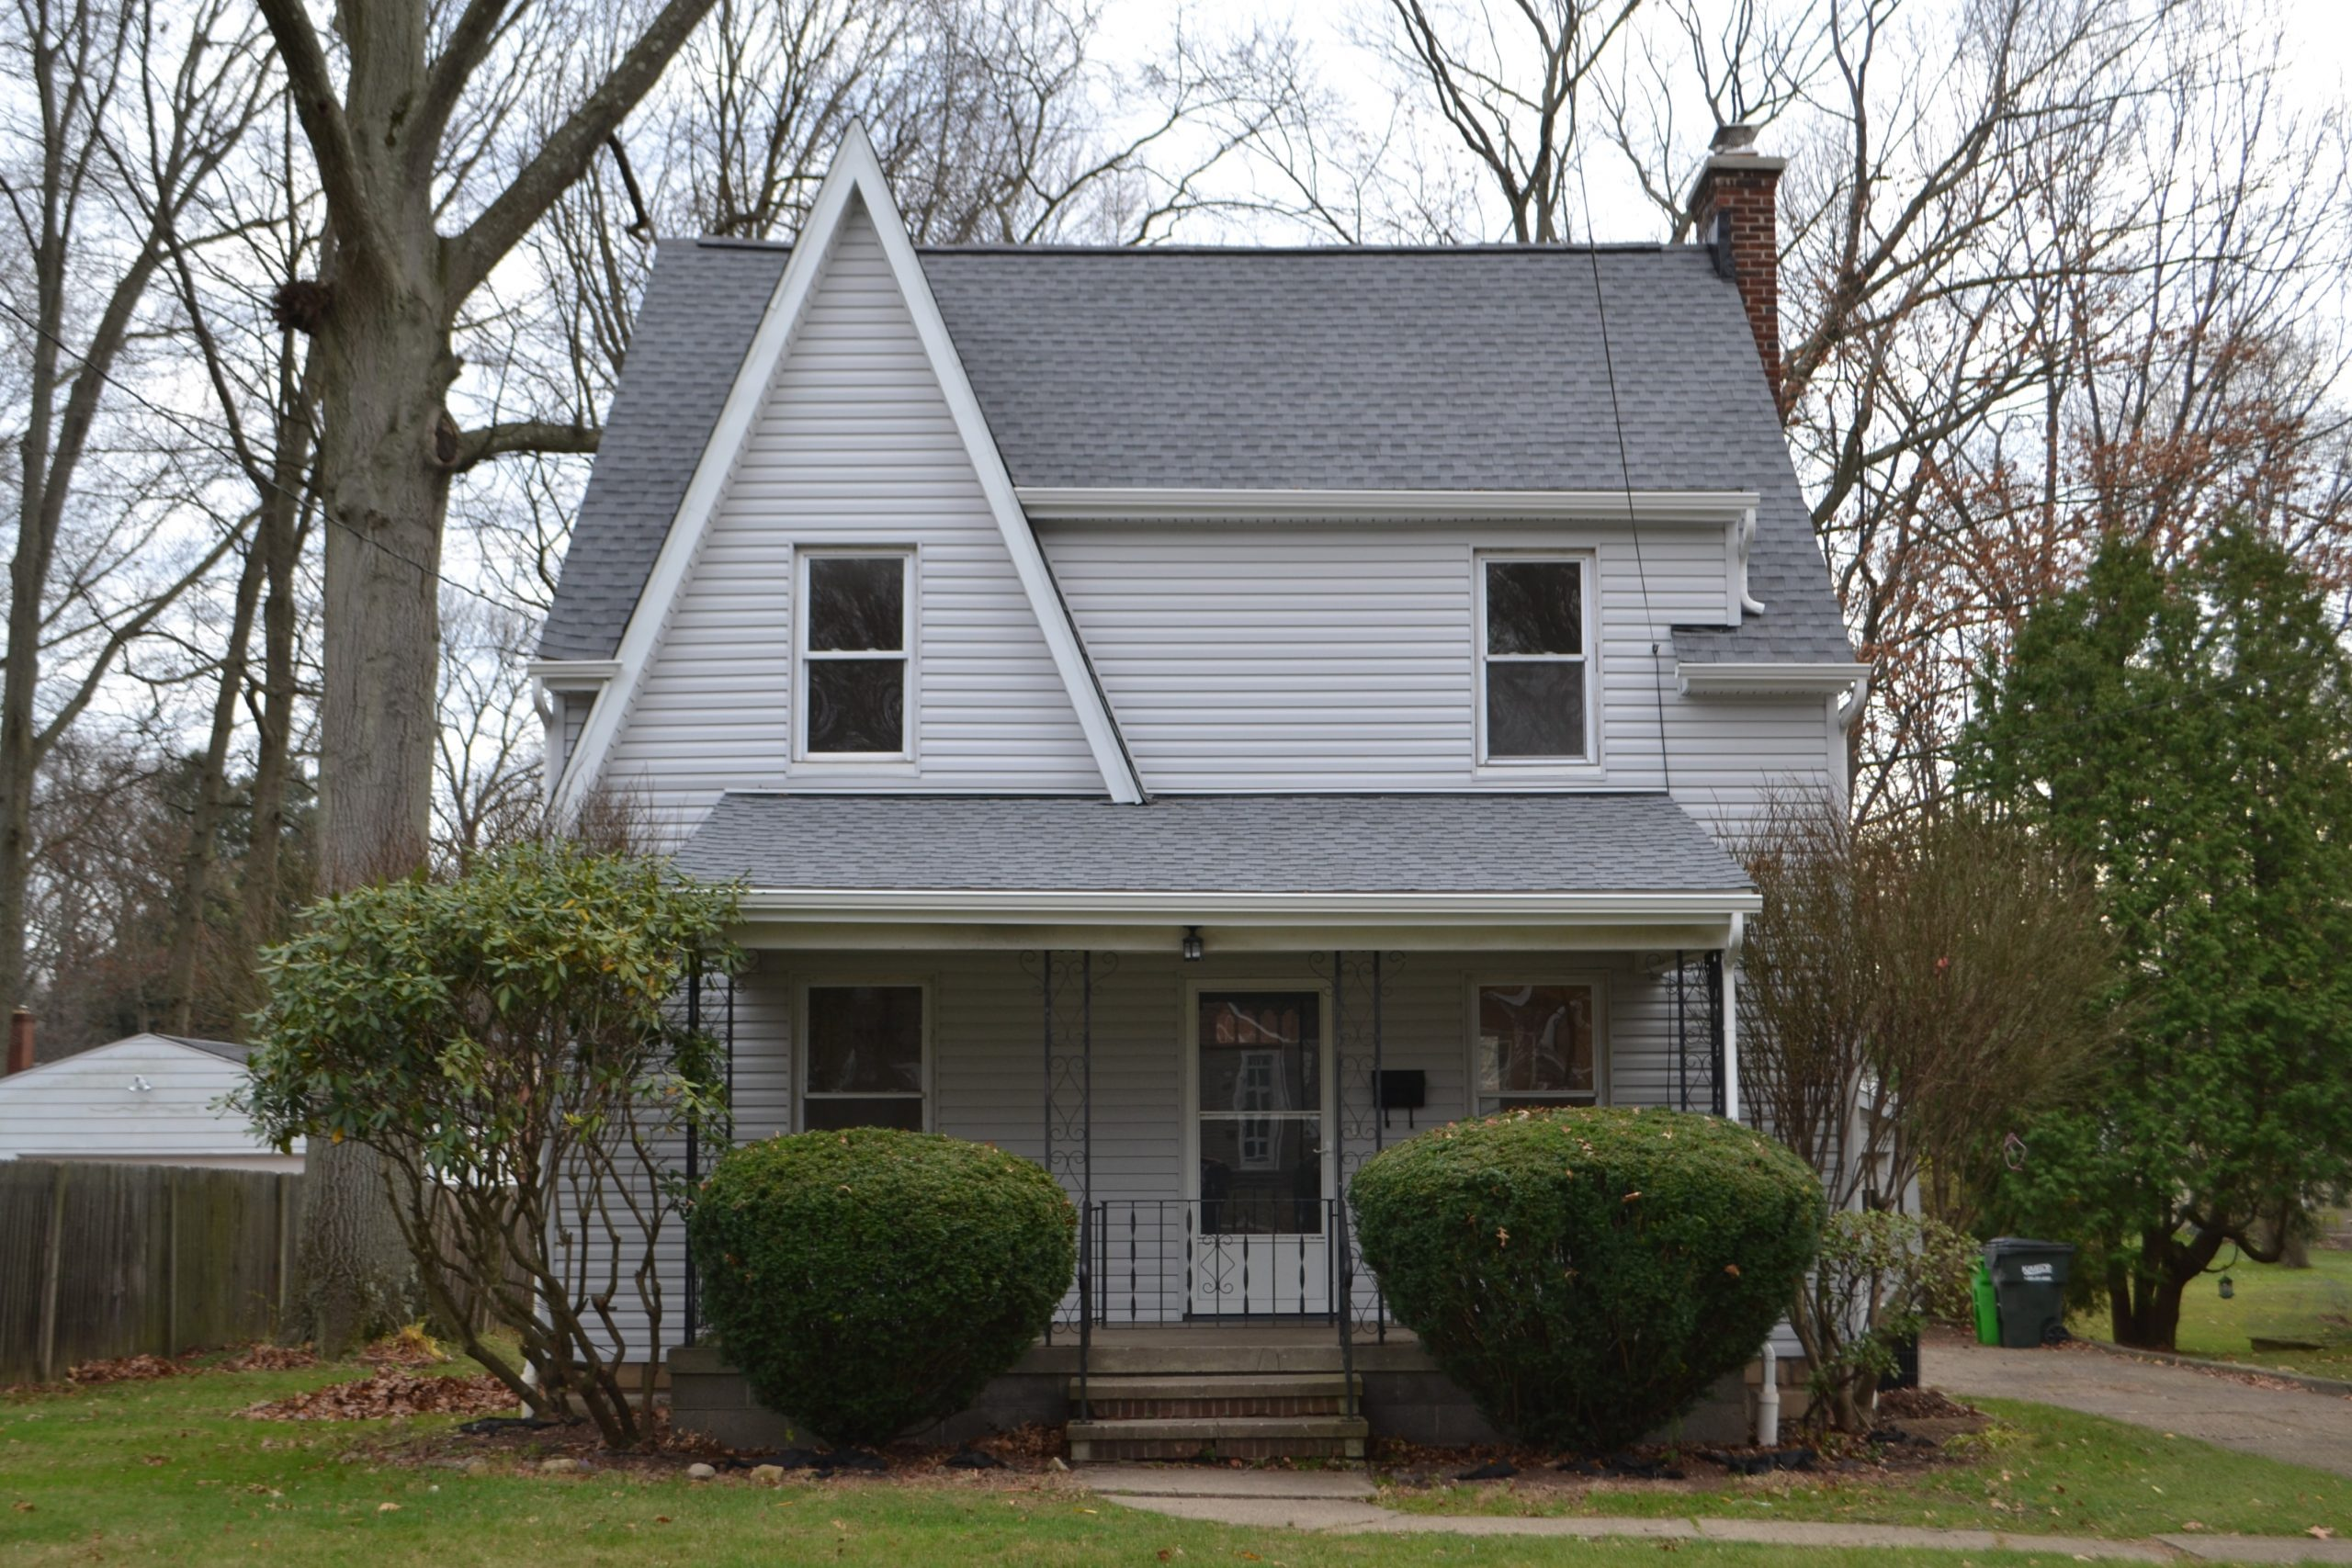 Stow, OH - $149,000